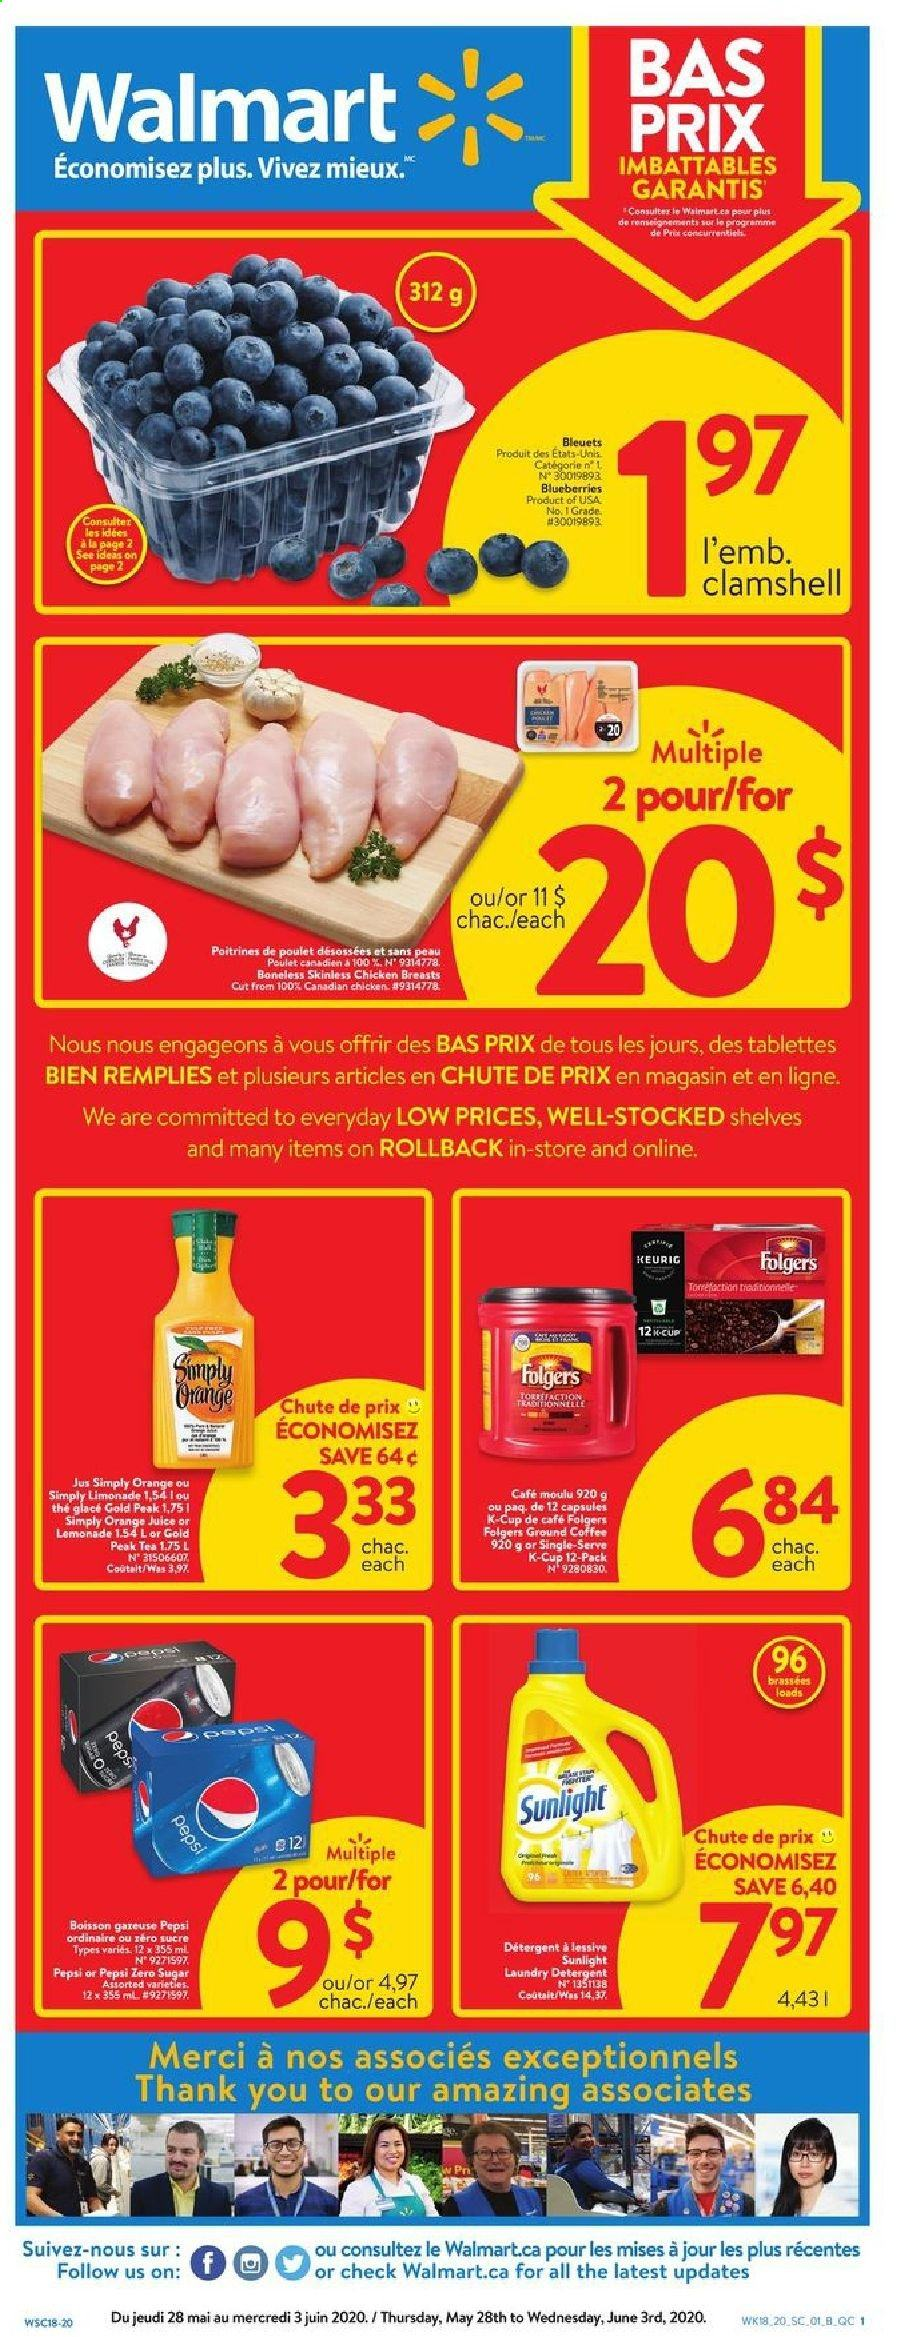 Walmart Flyer  - May 28, 2020 - June 03, 2020. Page 1.